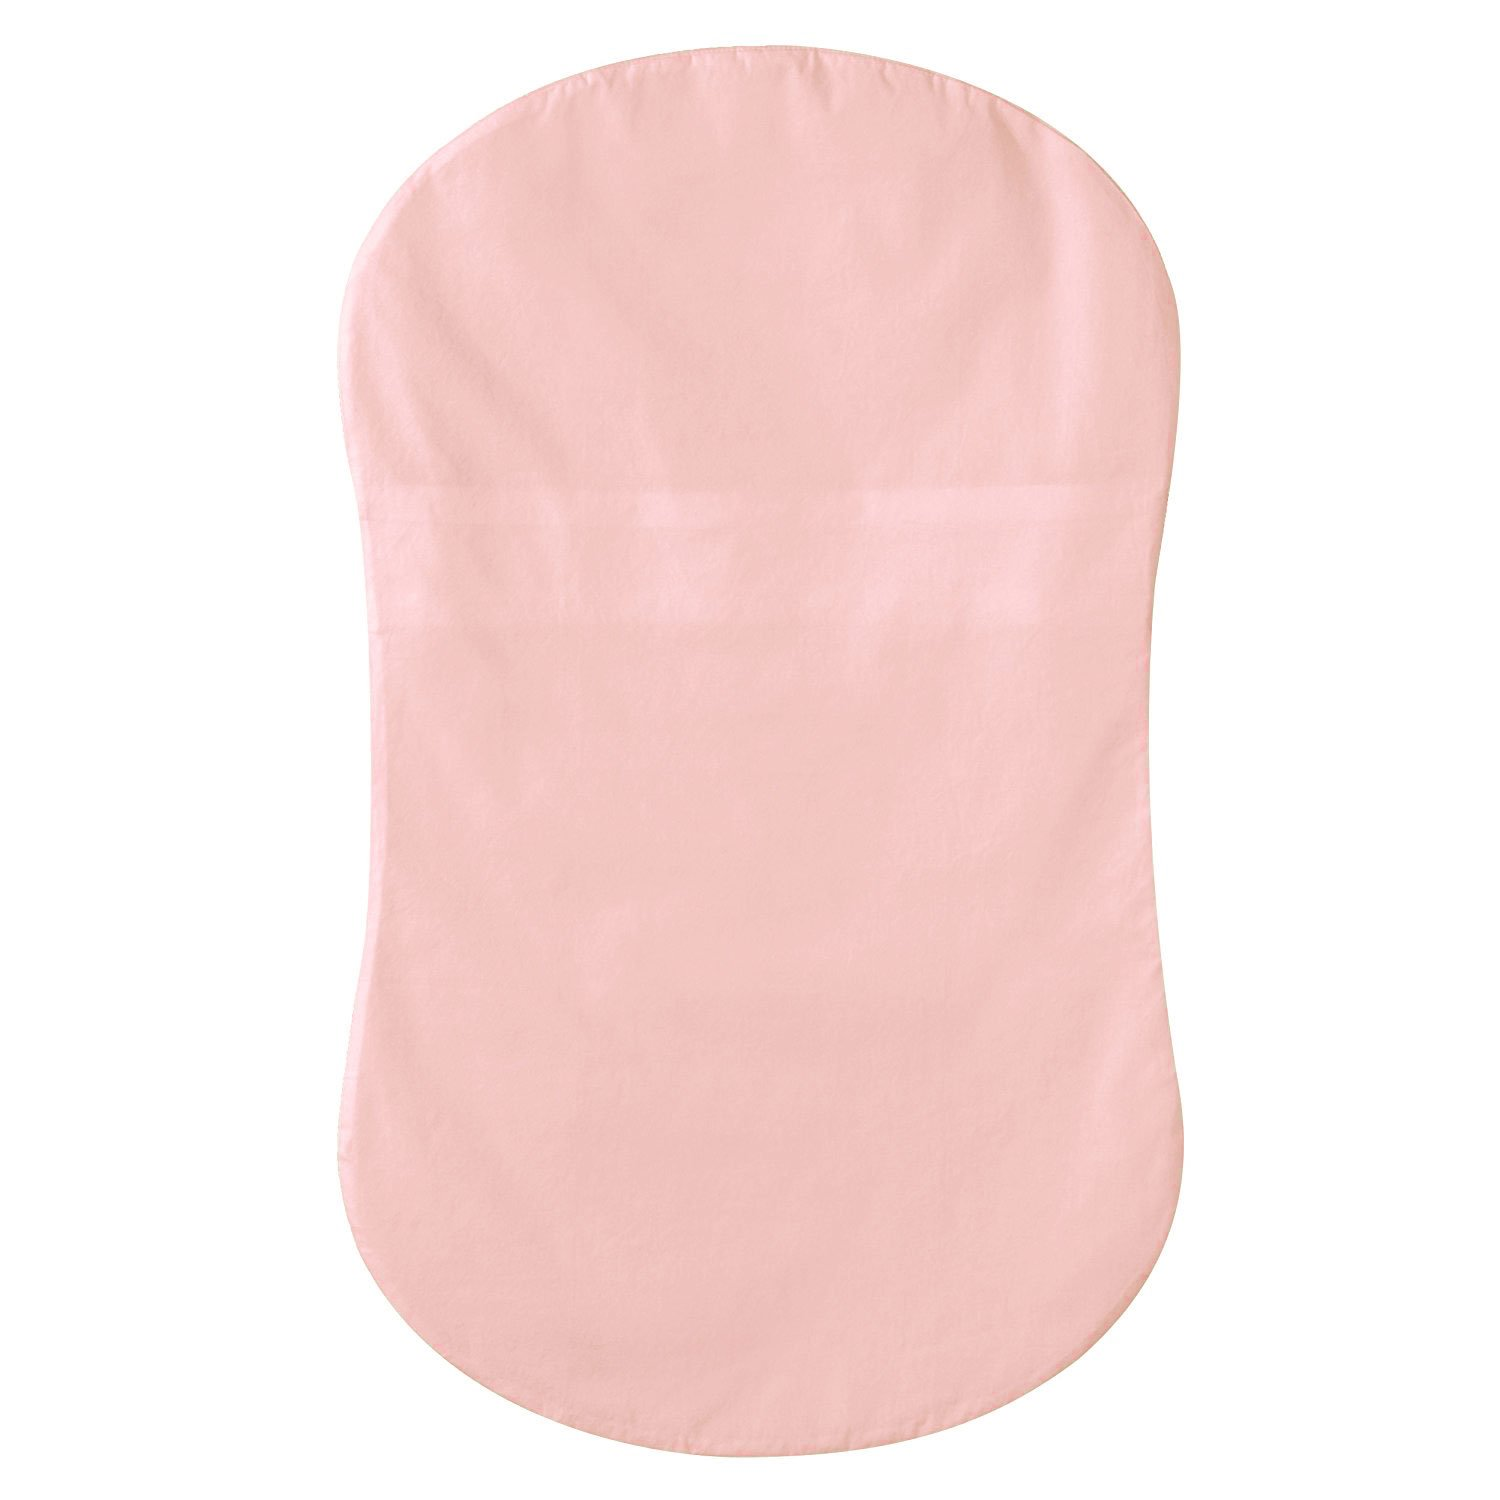 Halo Bassinest Swivel Sleeper Fitted Sheet, Pink 3848